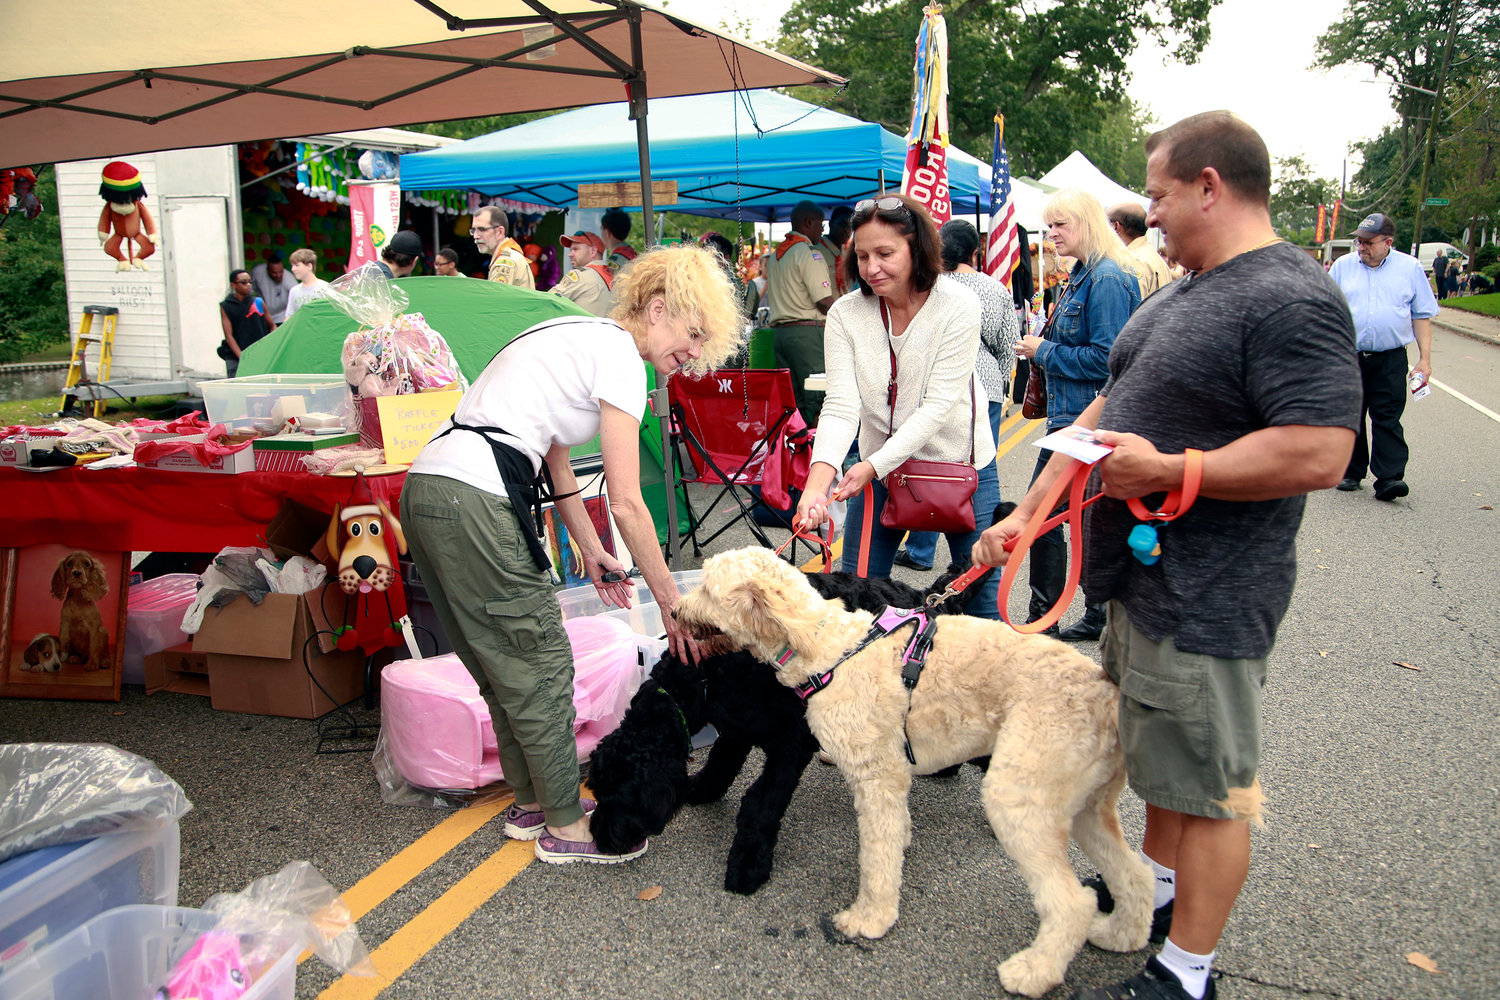 Maria and Bill Sonner, right, brought their golden doodles, Alvin and Simone, out to West Hempstead's annual Street Fair as they met with Sherry Bishop on Oct. 7.